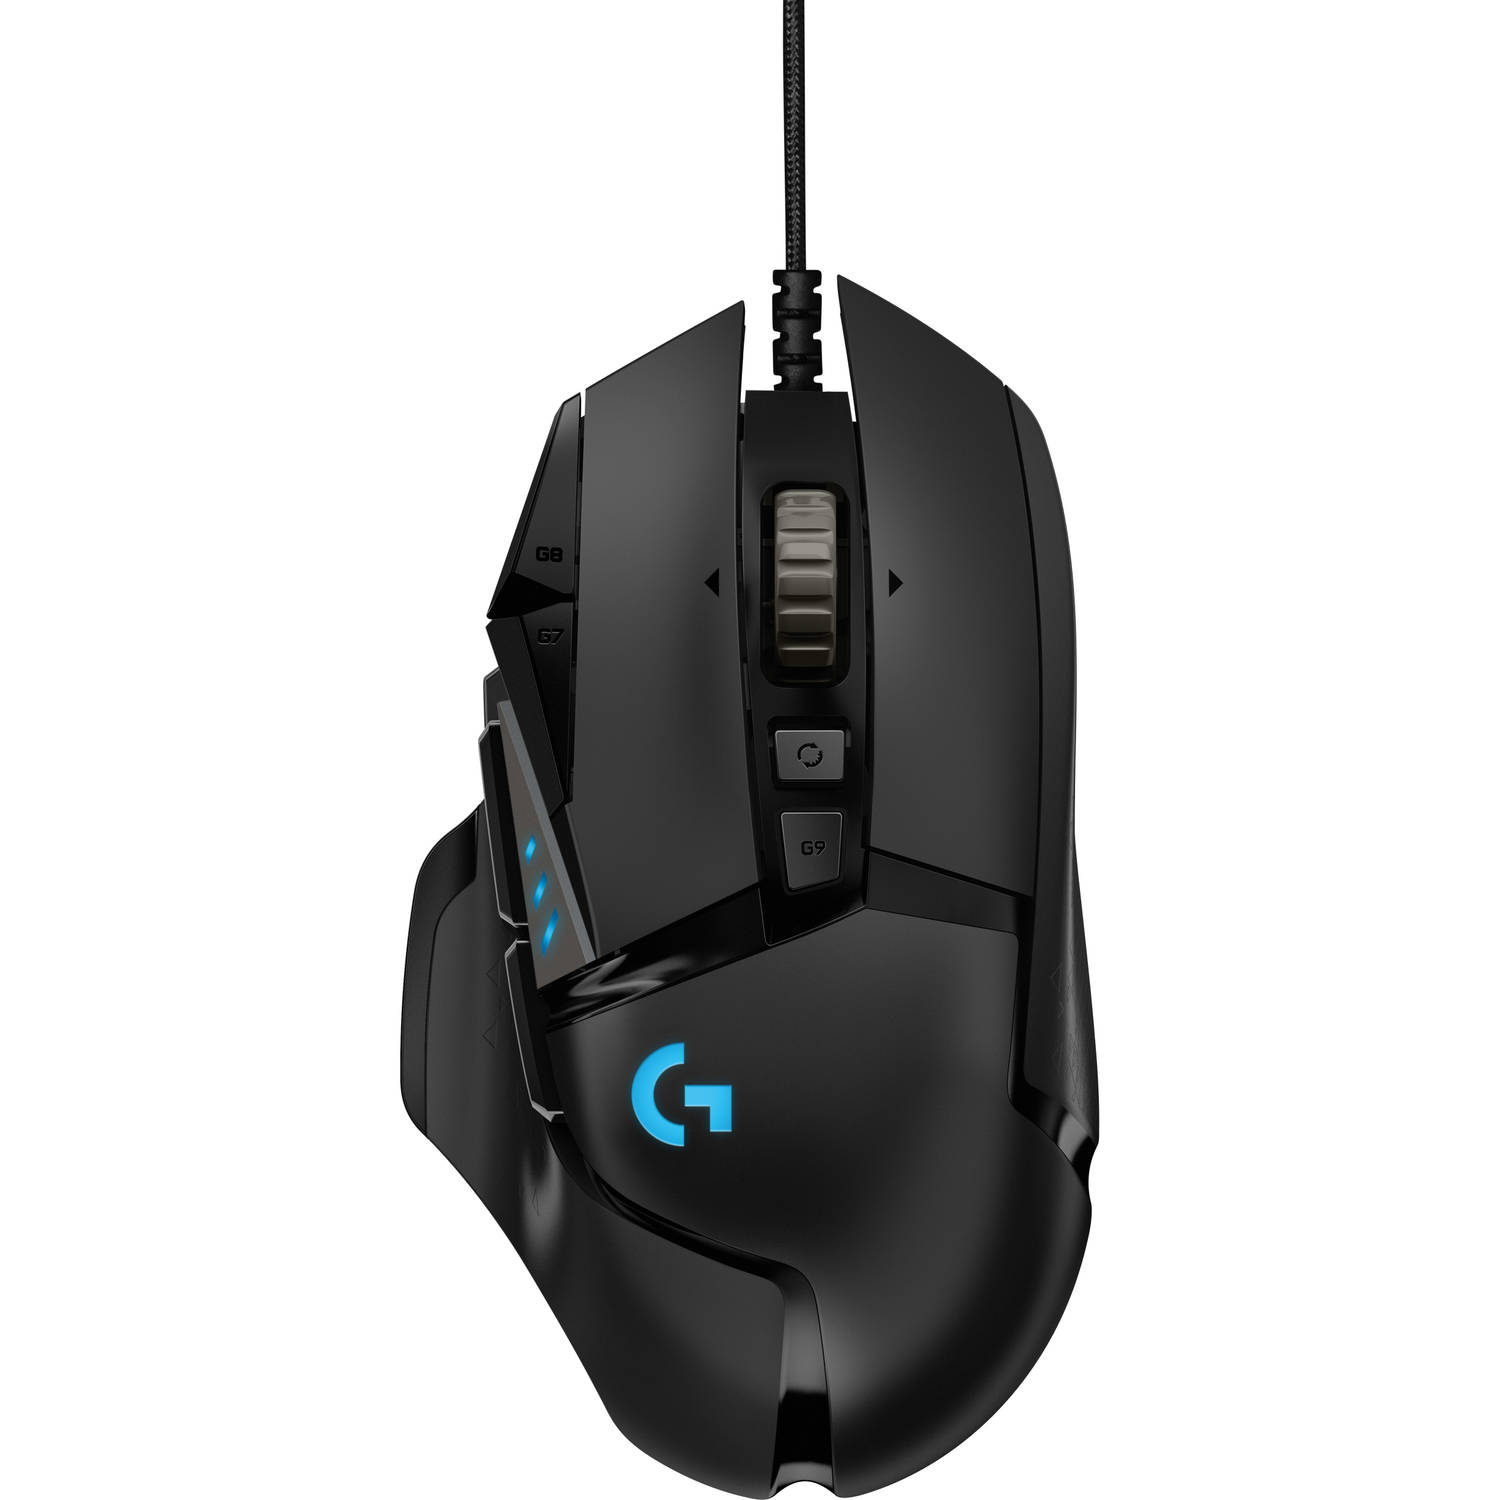 G502 HERO High Performance Gaming Mouse